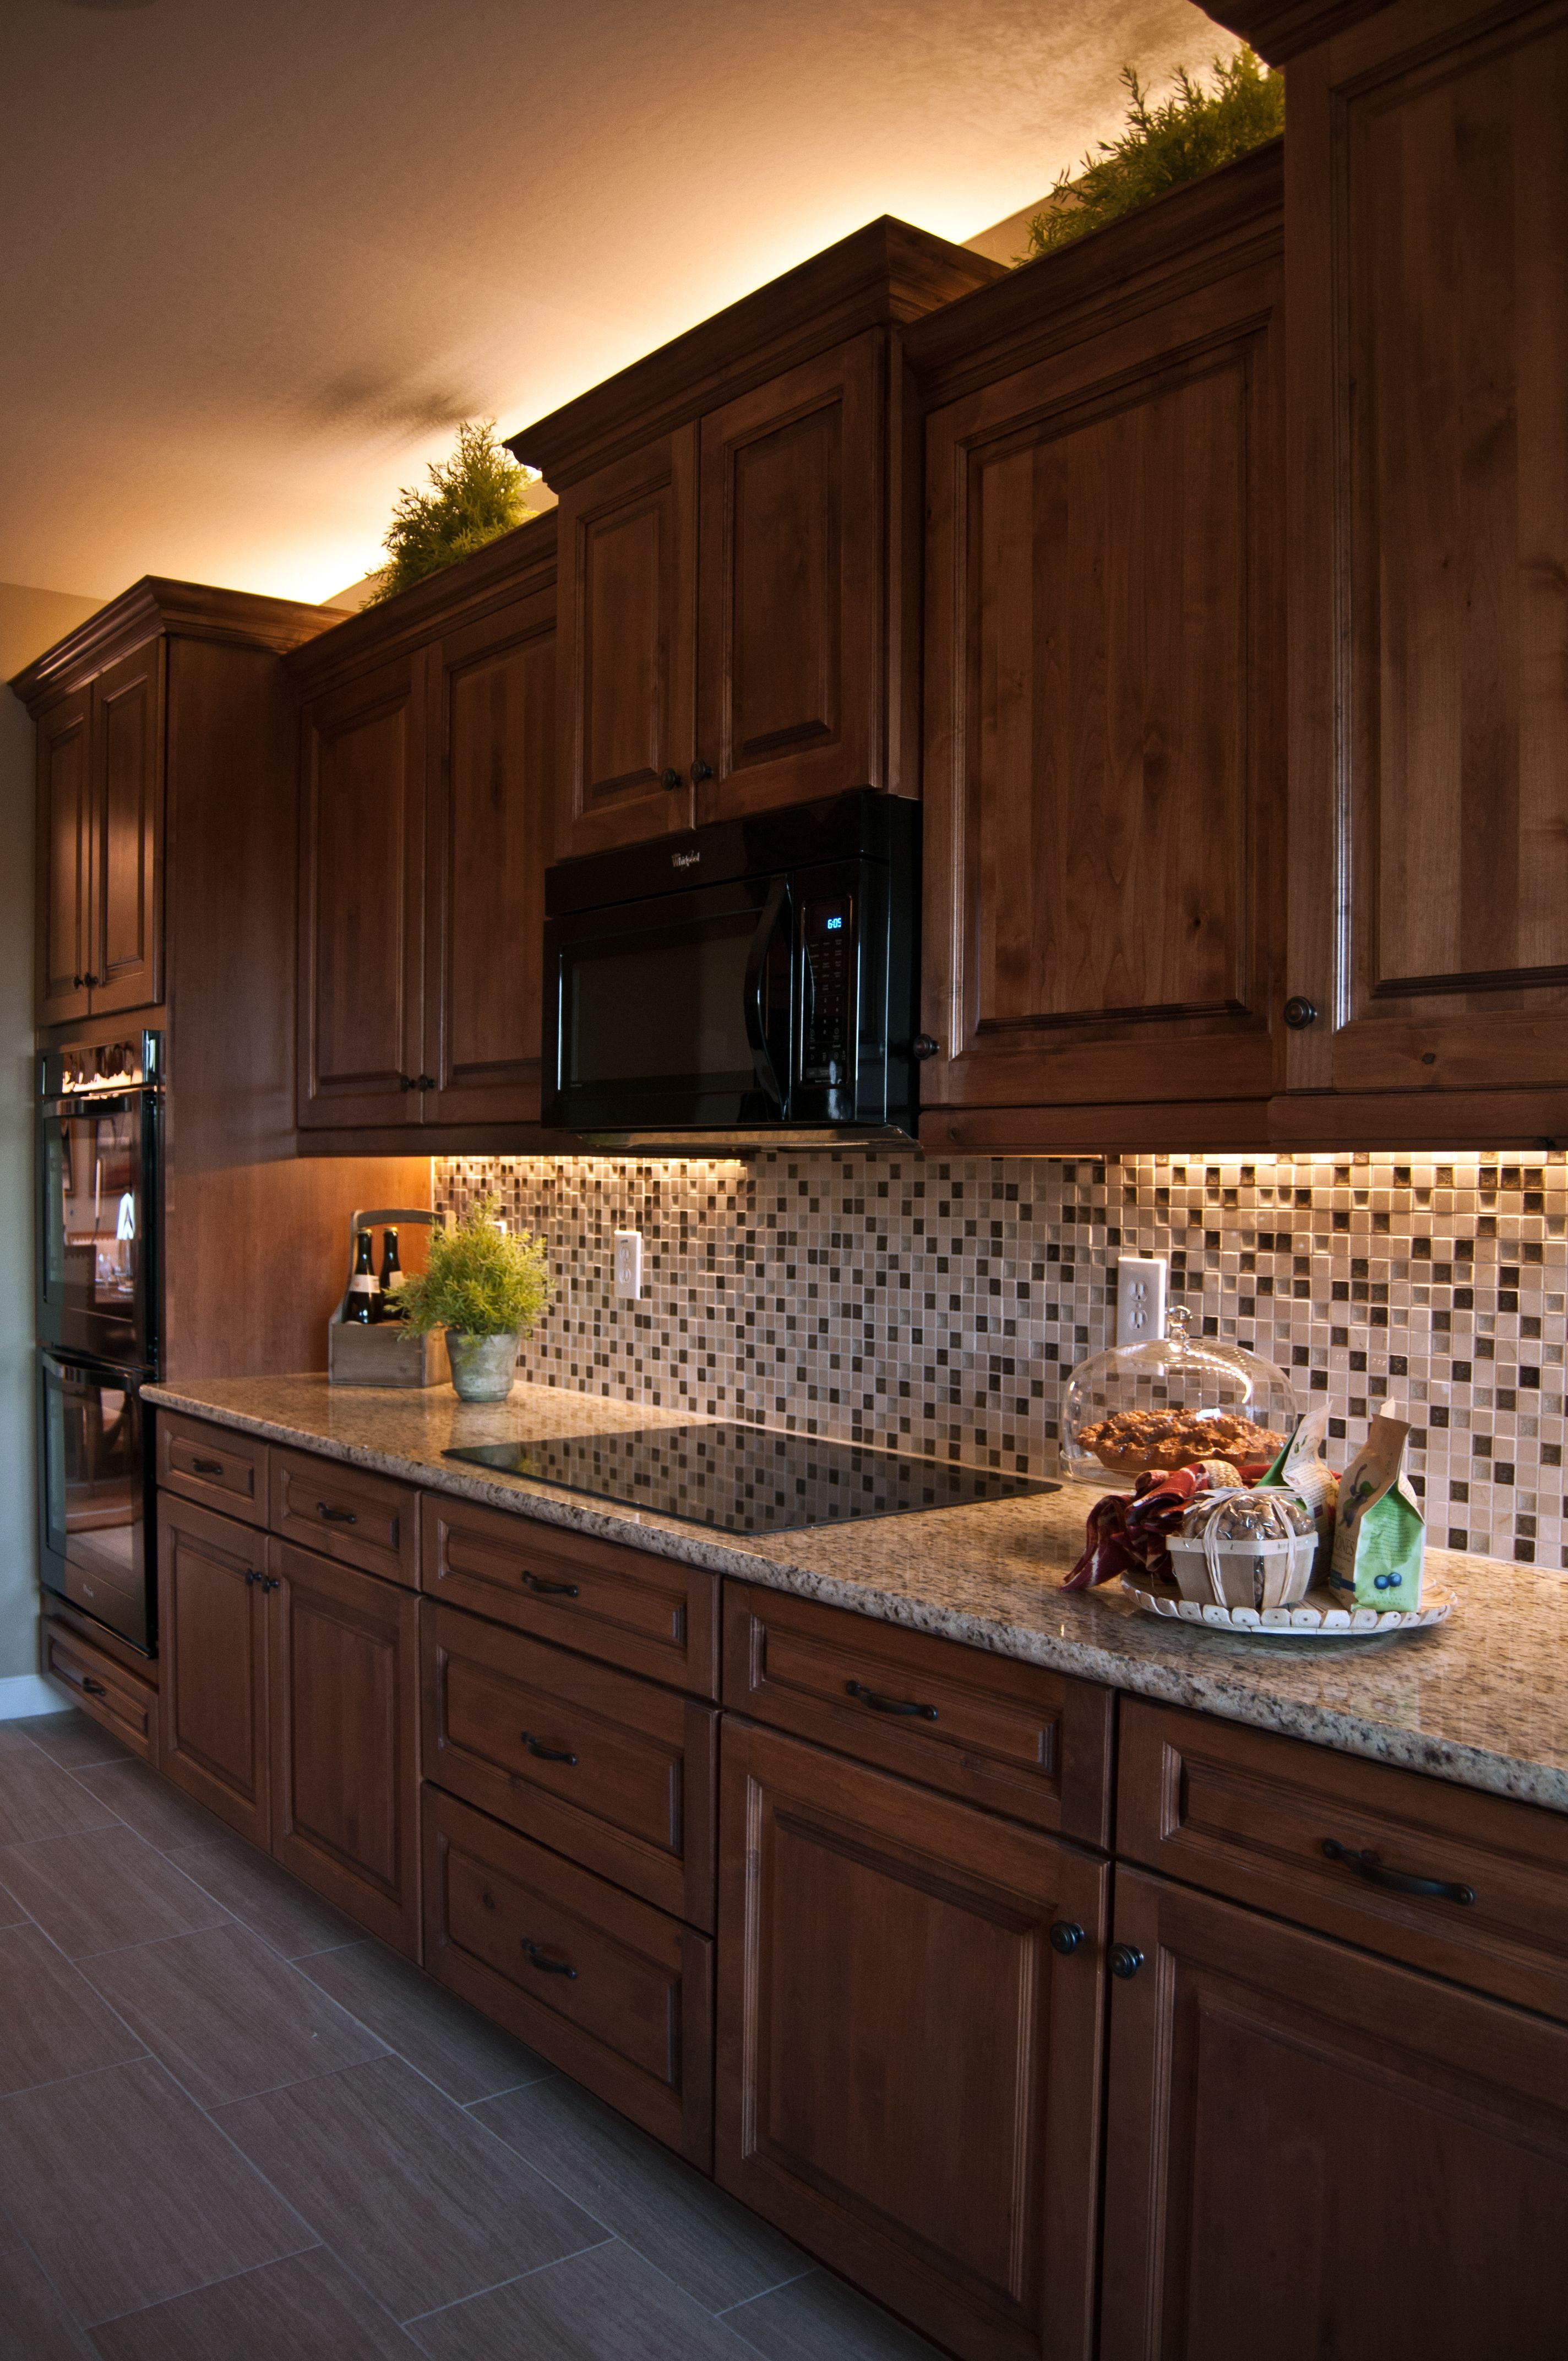 Crown Moulding Above Kitchen Cabinets Inspired Led Lighting In Traditional Style Kitchen Warm